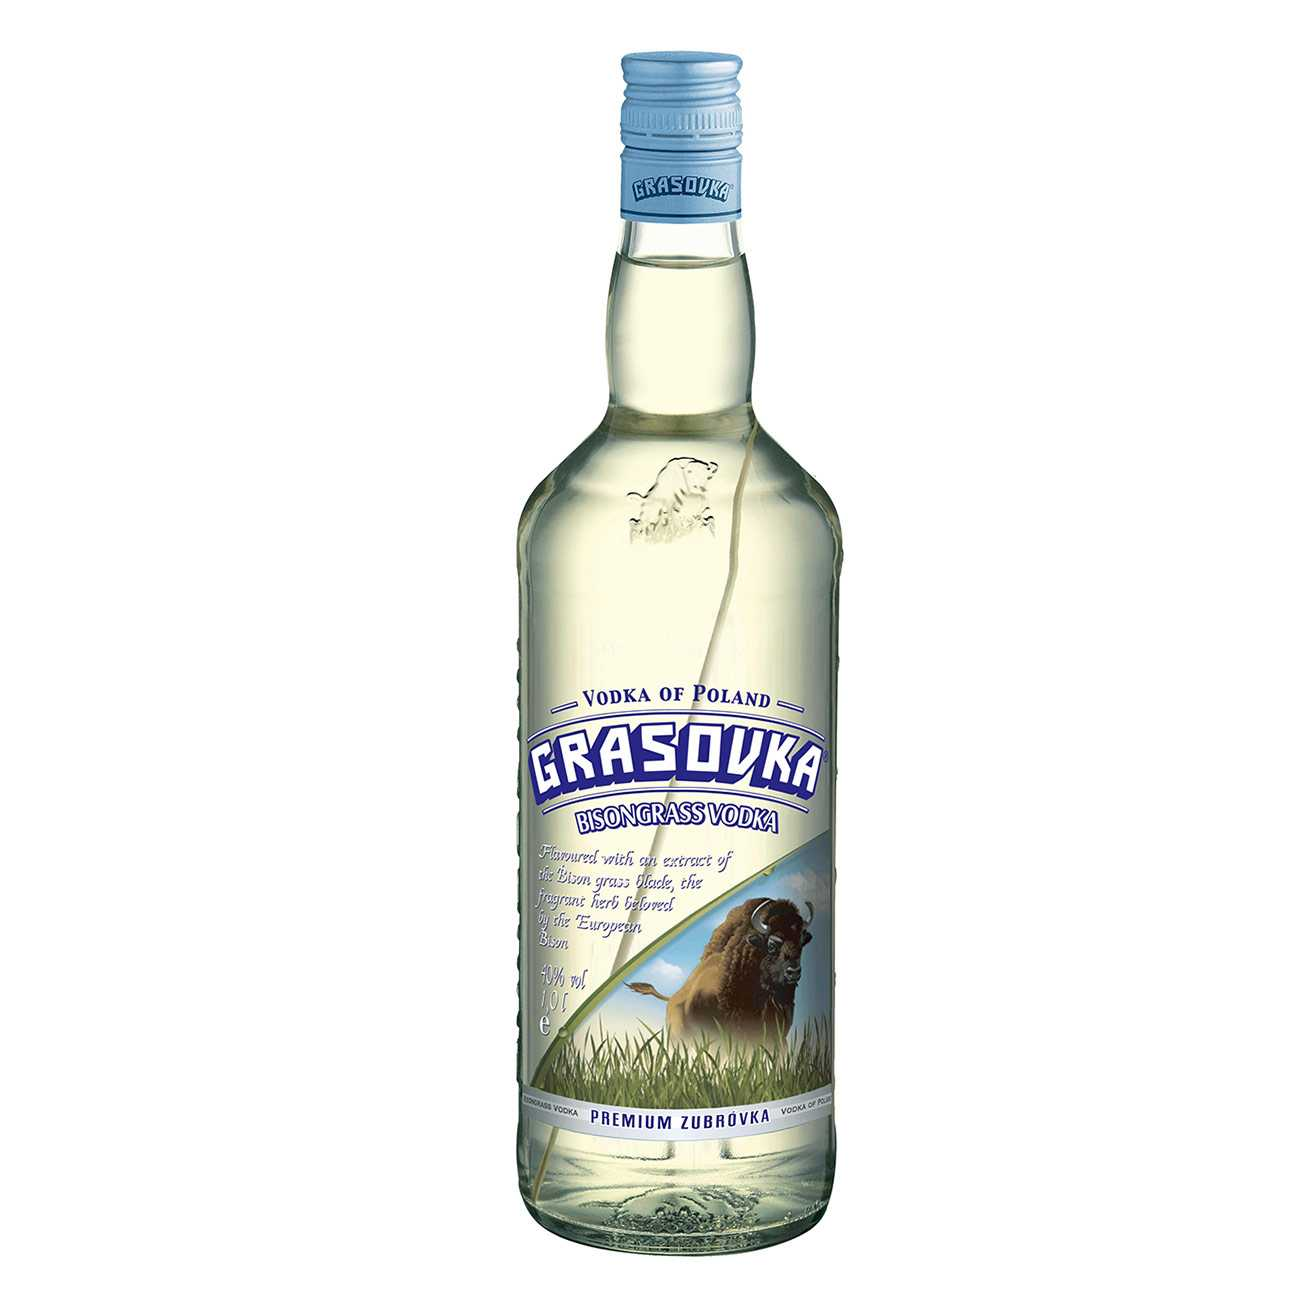 Vodka, BISONGRASS 1000 ML, Grasovka